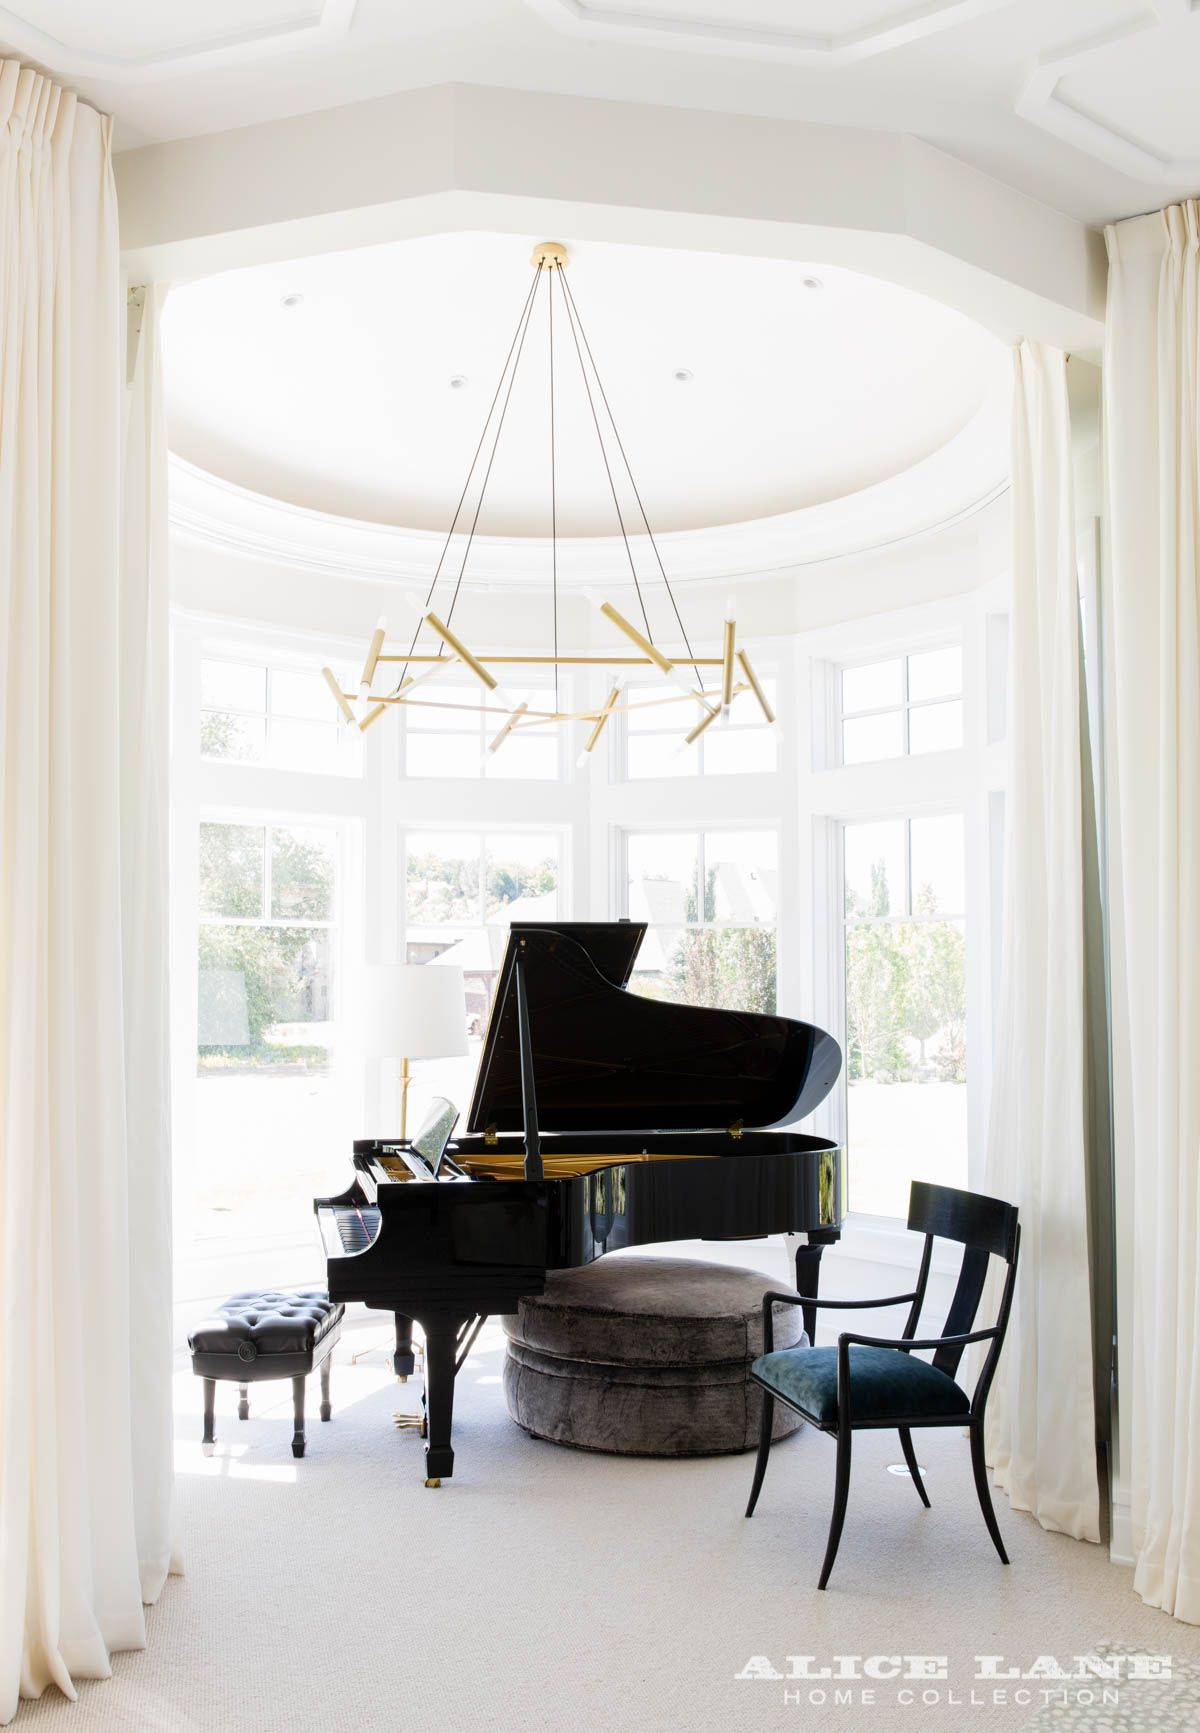 Grand Living Room: Breathtaking Ceiling Design In This Music Wall